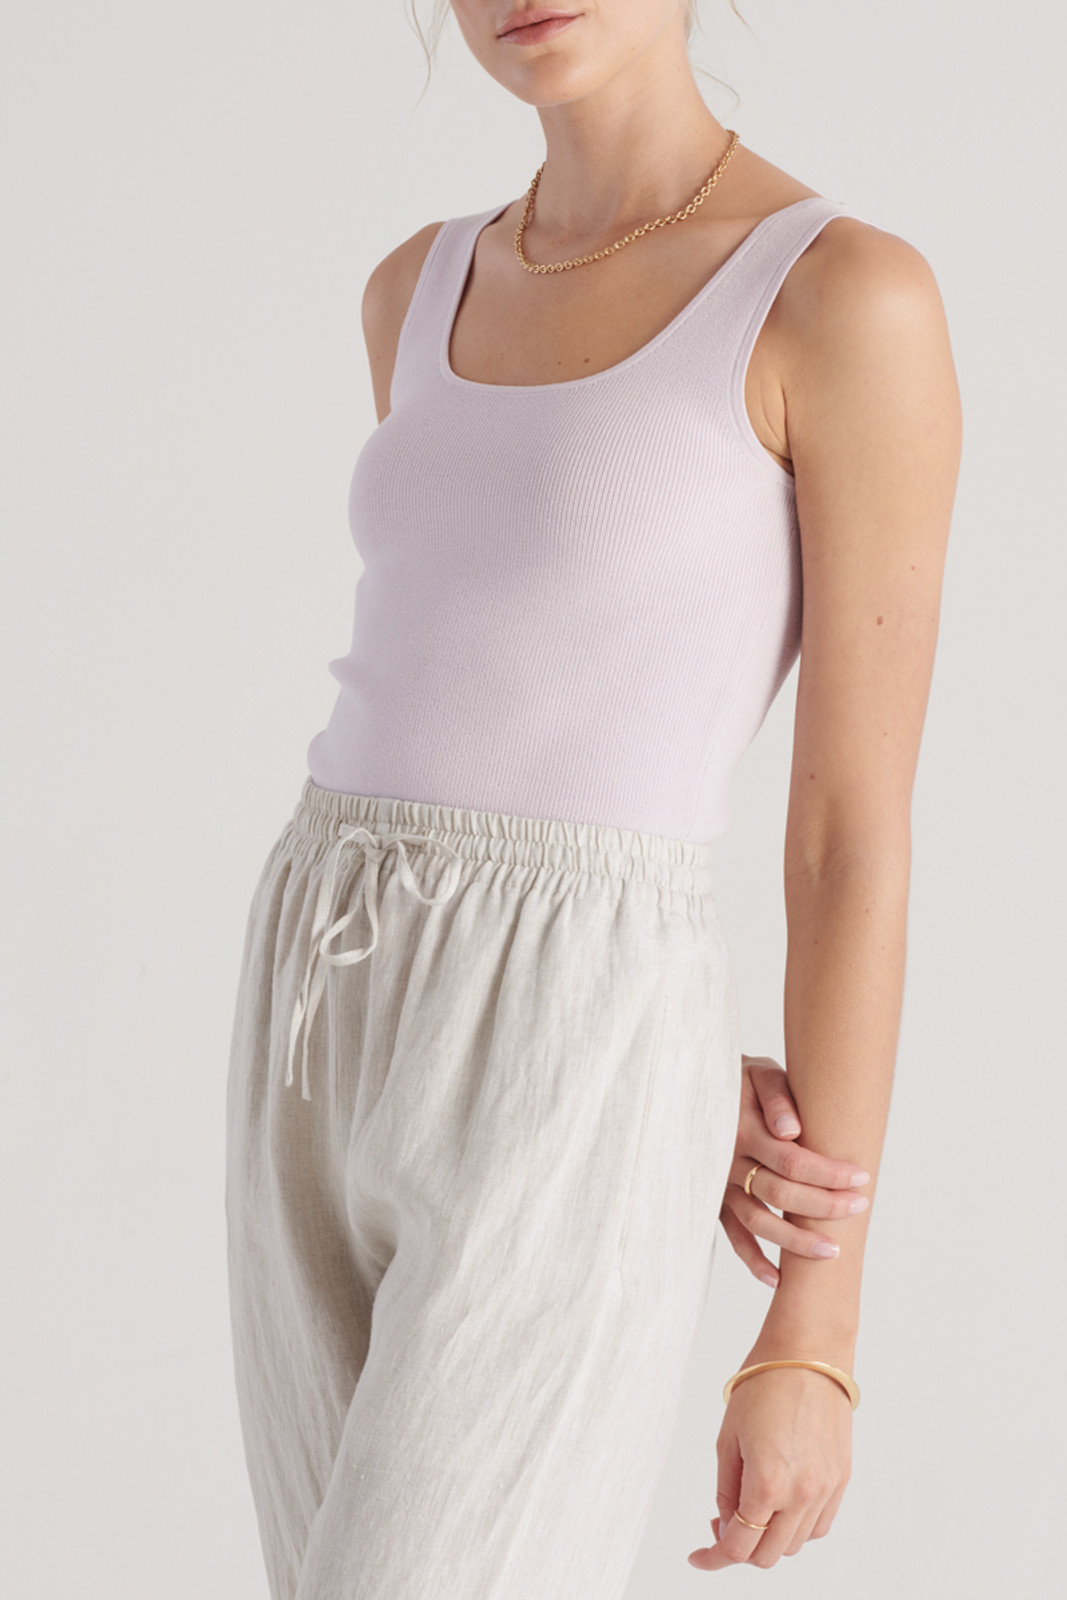 Elka Collective WomensFrame Knit Top Lilac  5